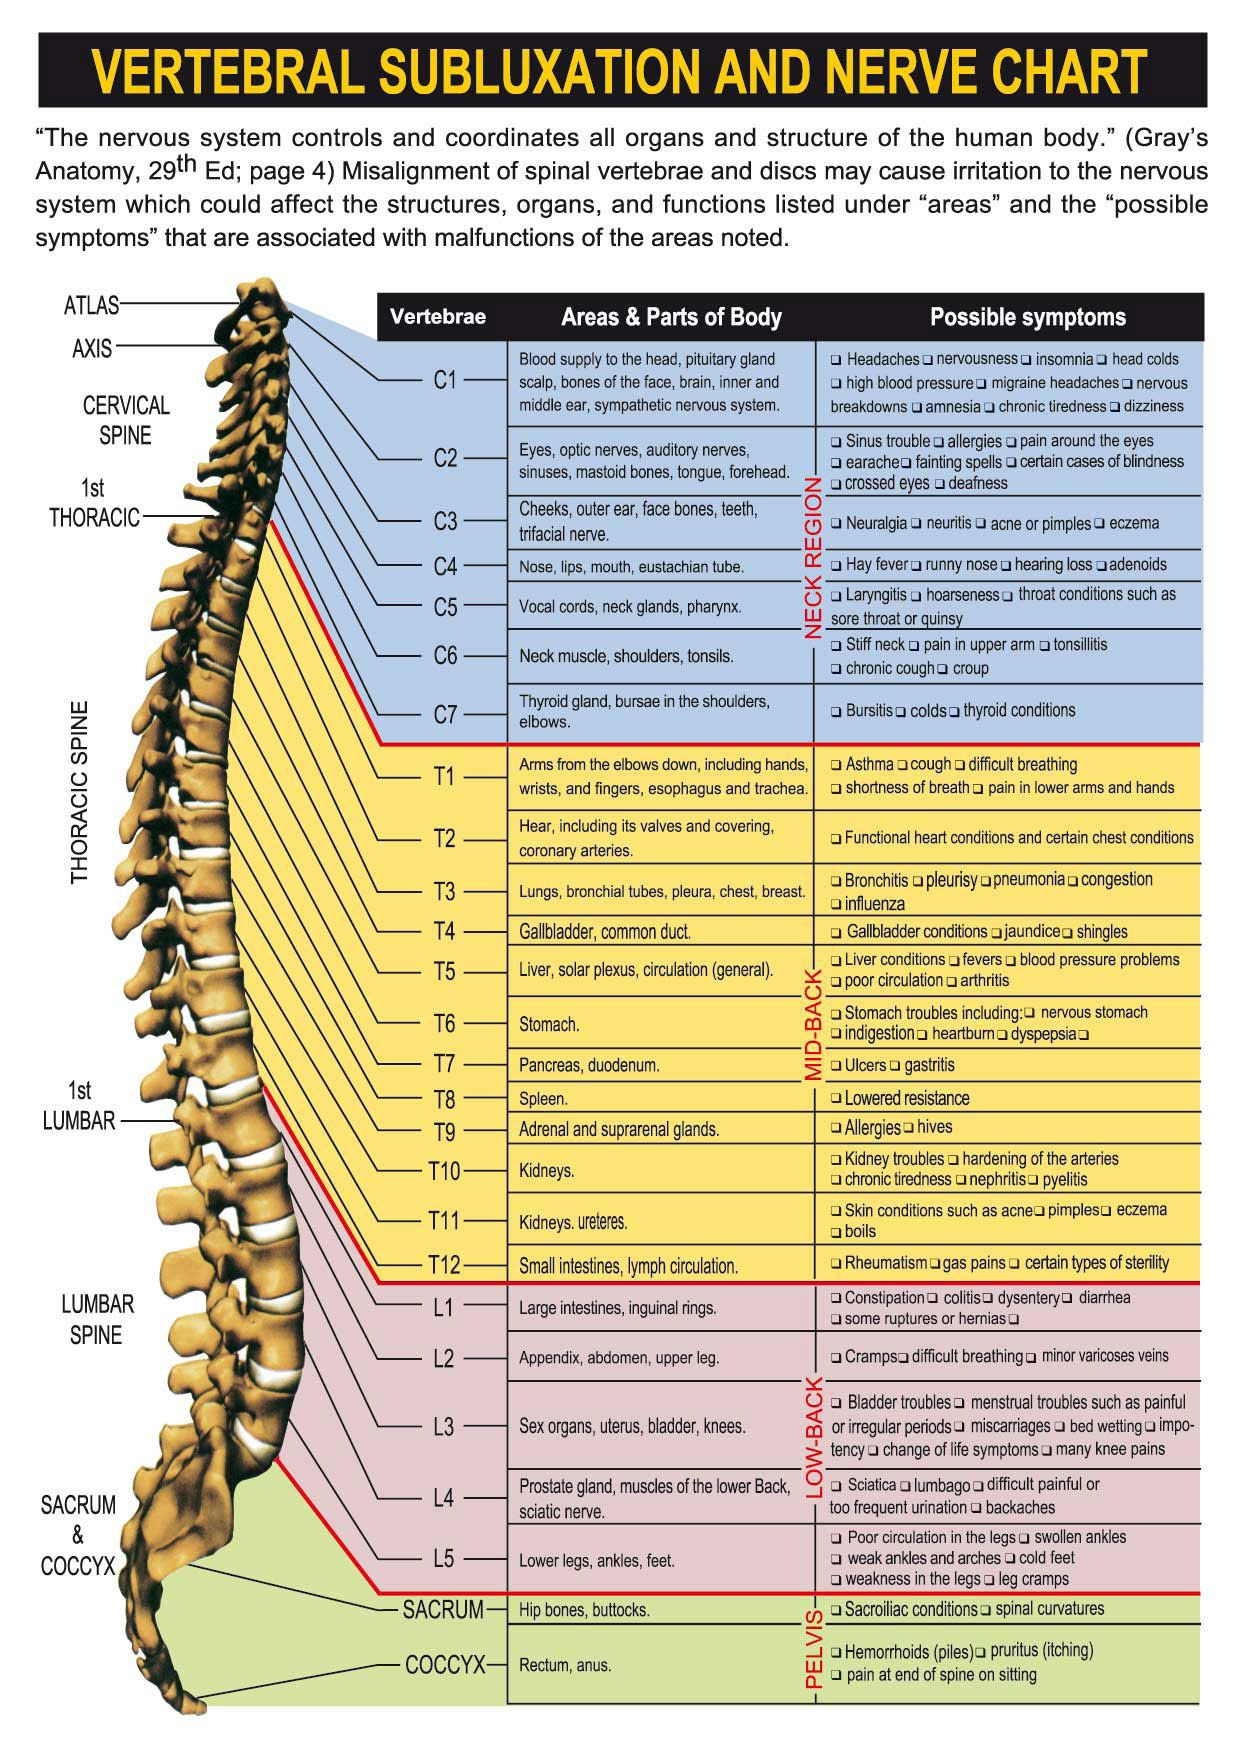 medium resolution of crazy how accurate this is back pain chart back pain spine spine nerve root diagram spine nerve diagram